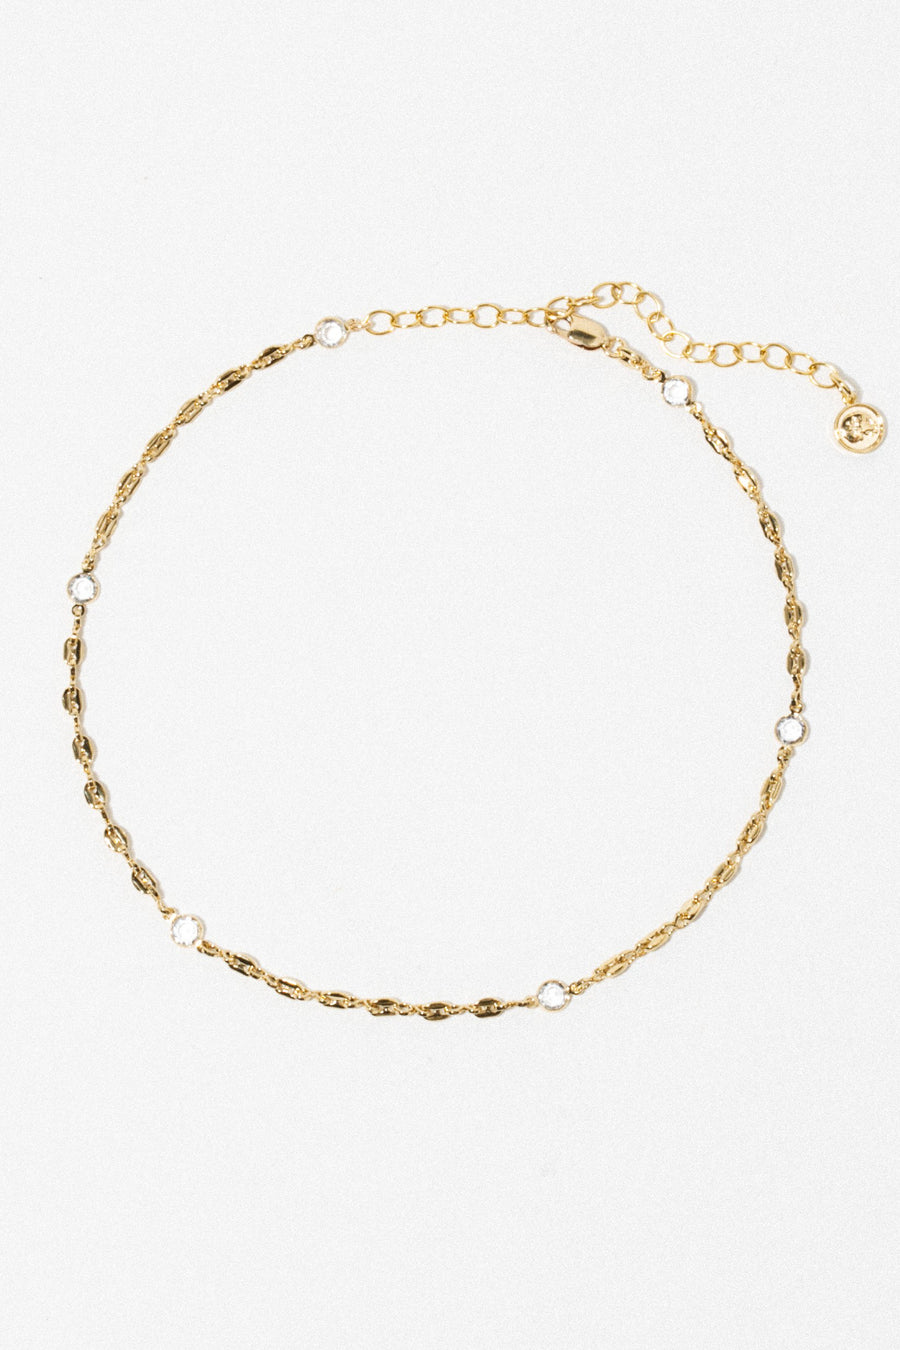 Goddess Jewelry Gold / 12 Inches The Tamara Necklace